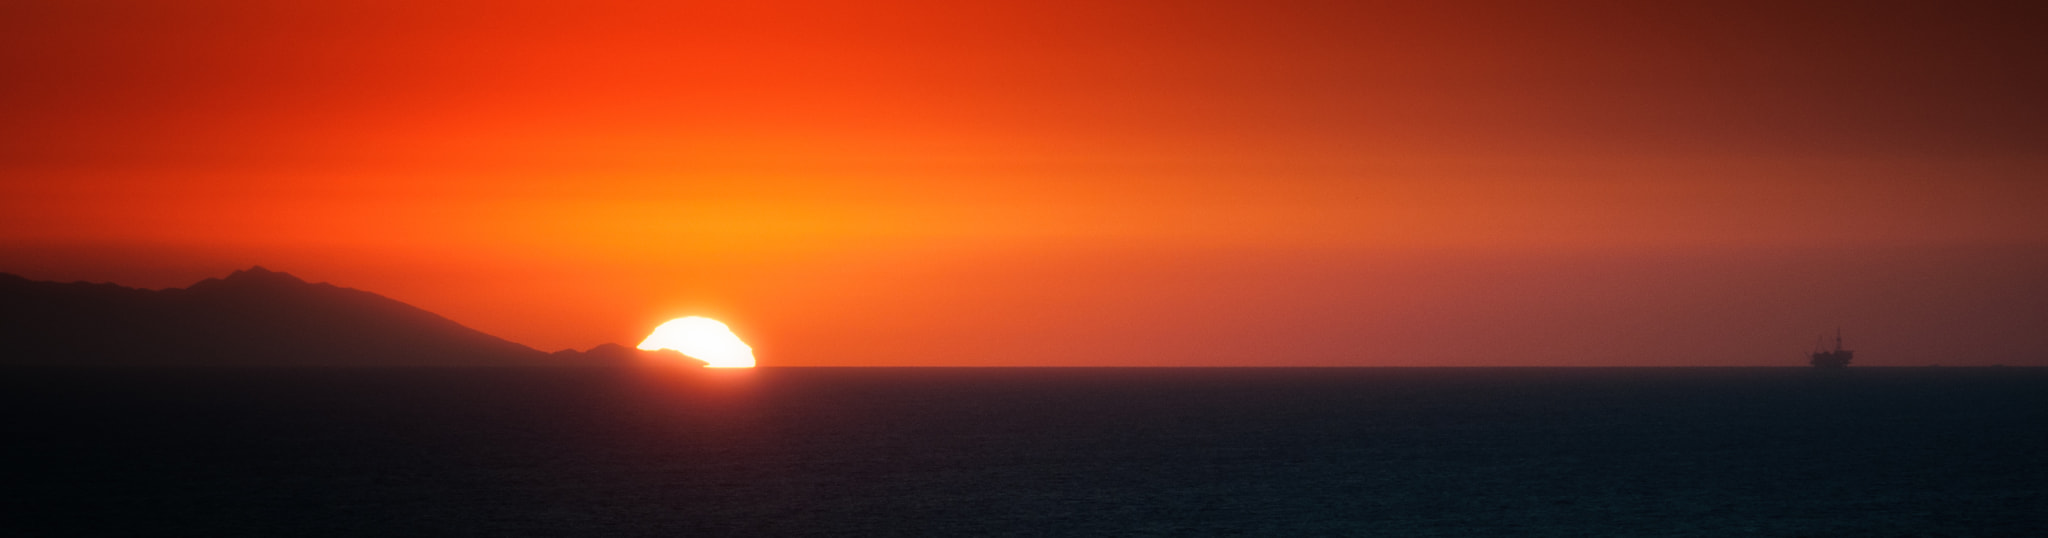 Photograph Sunset Over Catalina by Duane Bender on 500px